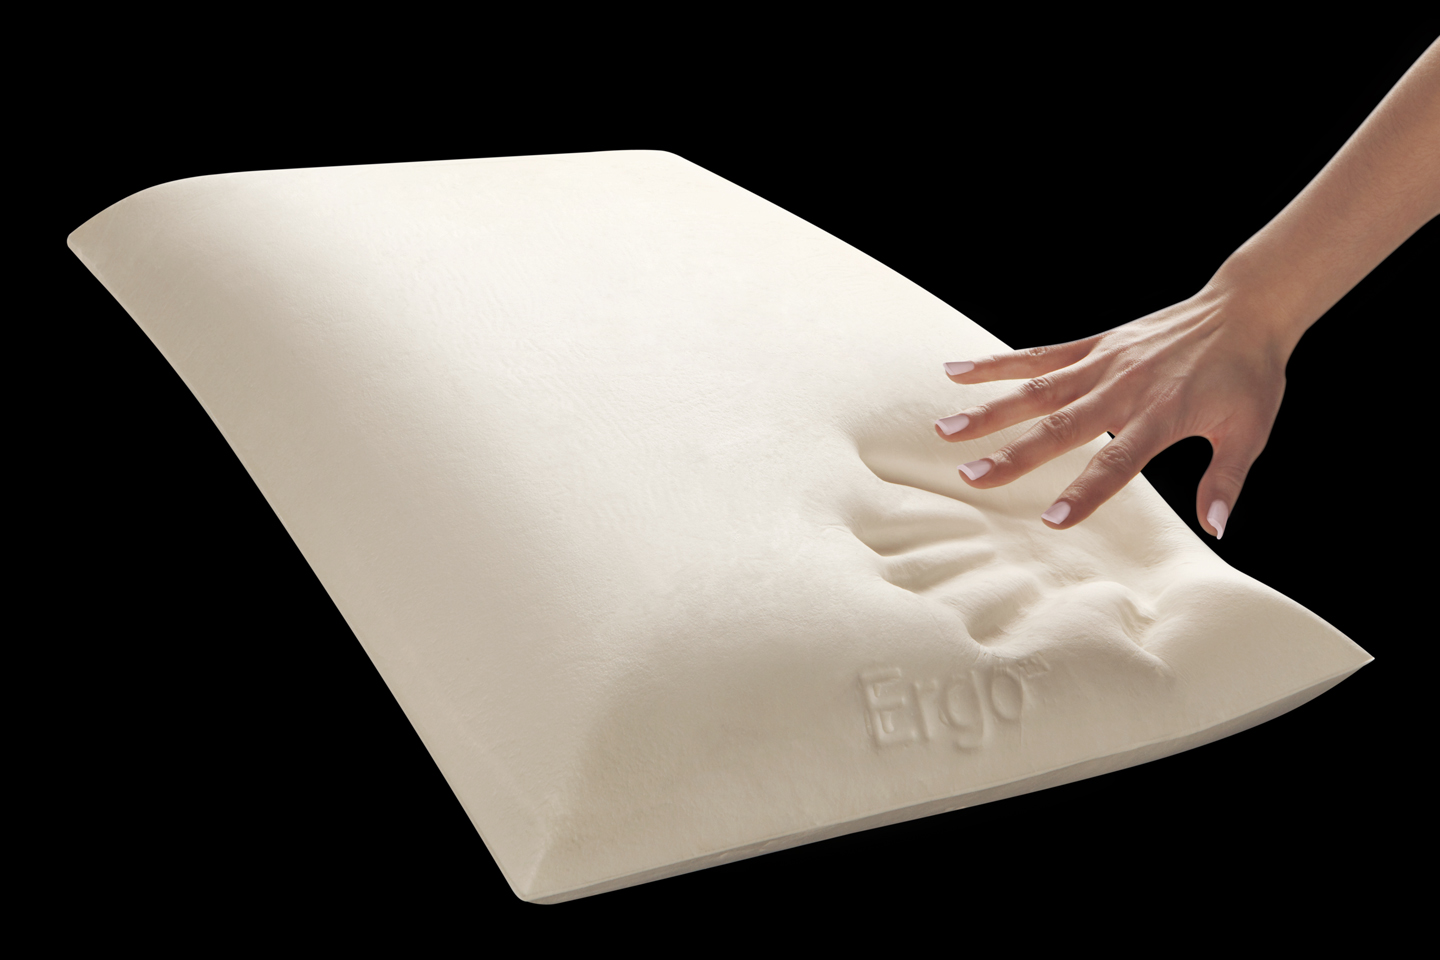 Latex Pillow with Hand sm.jpg